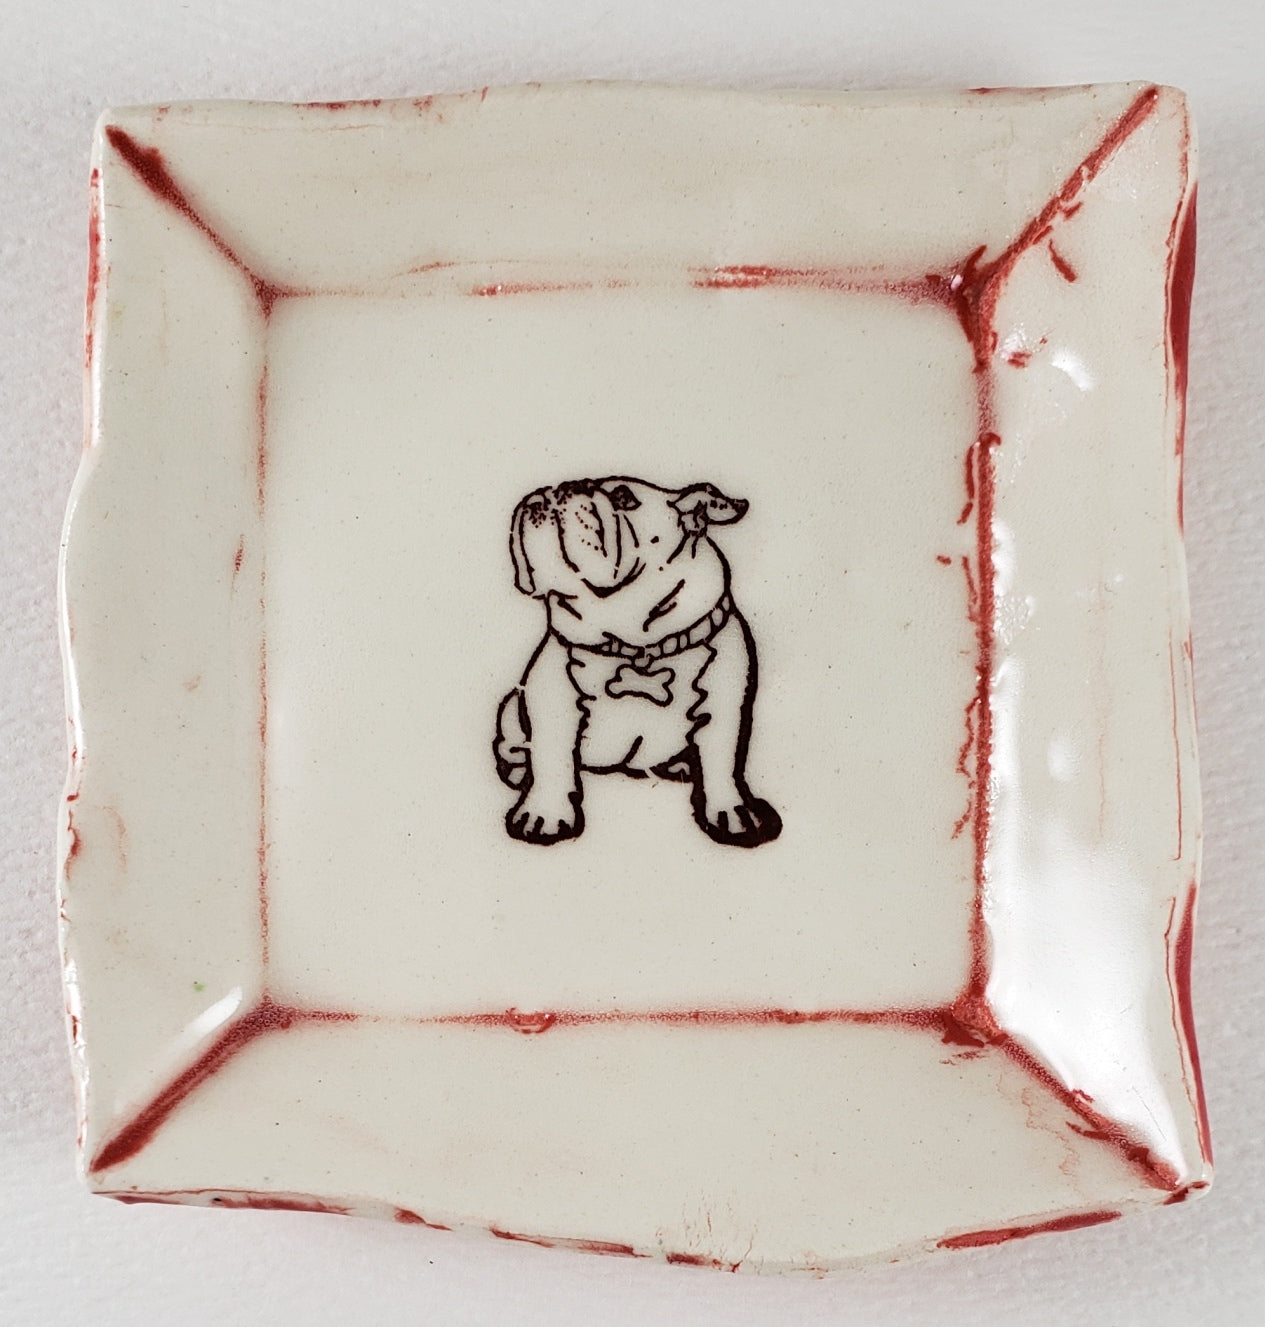 Tiny Plate with a bulldog